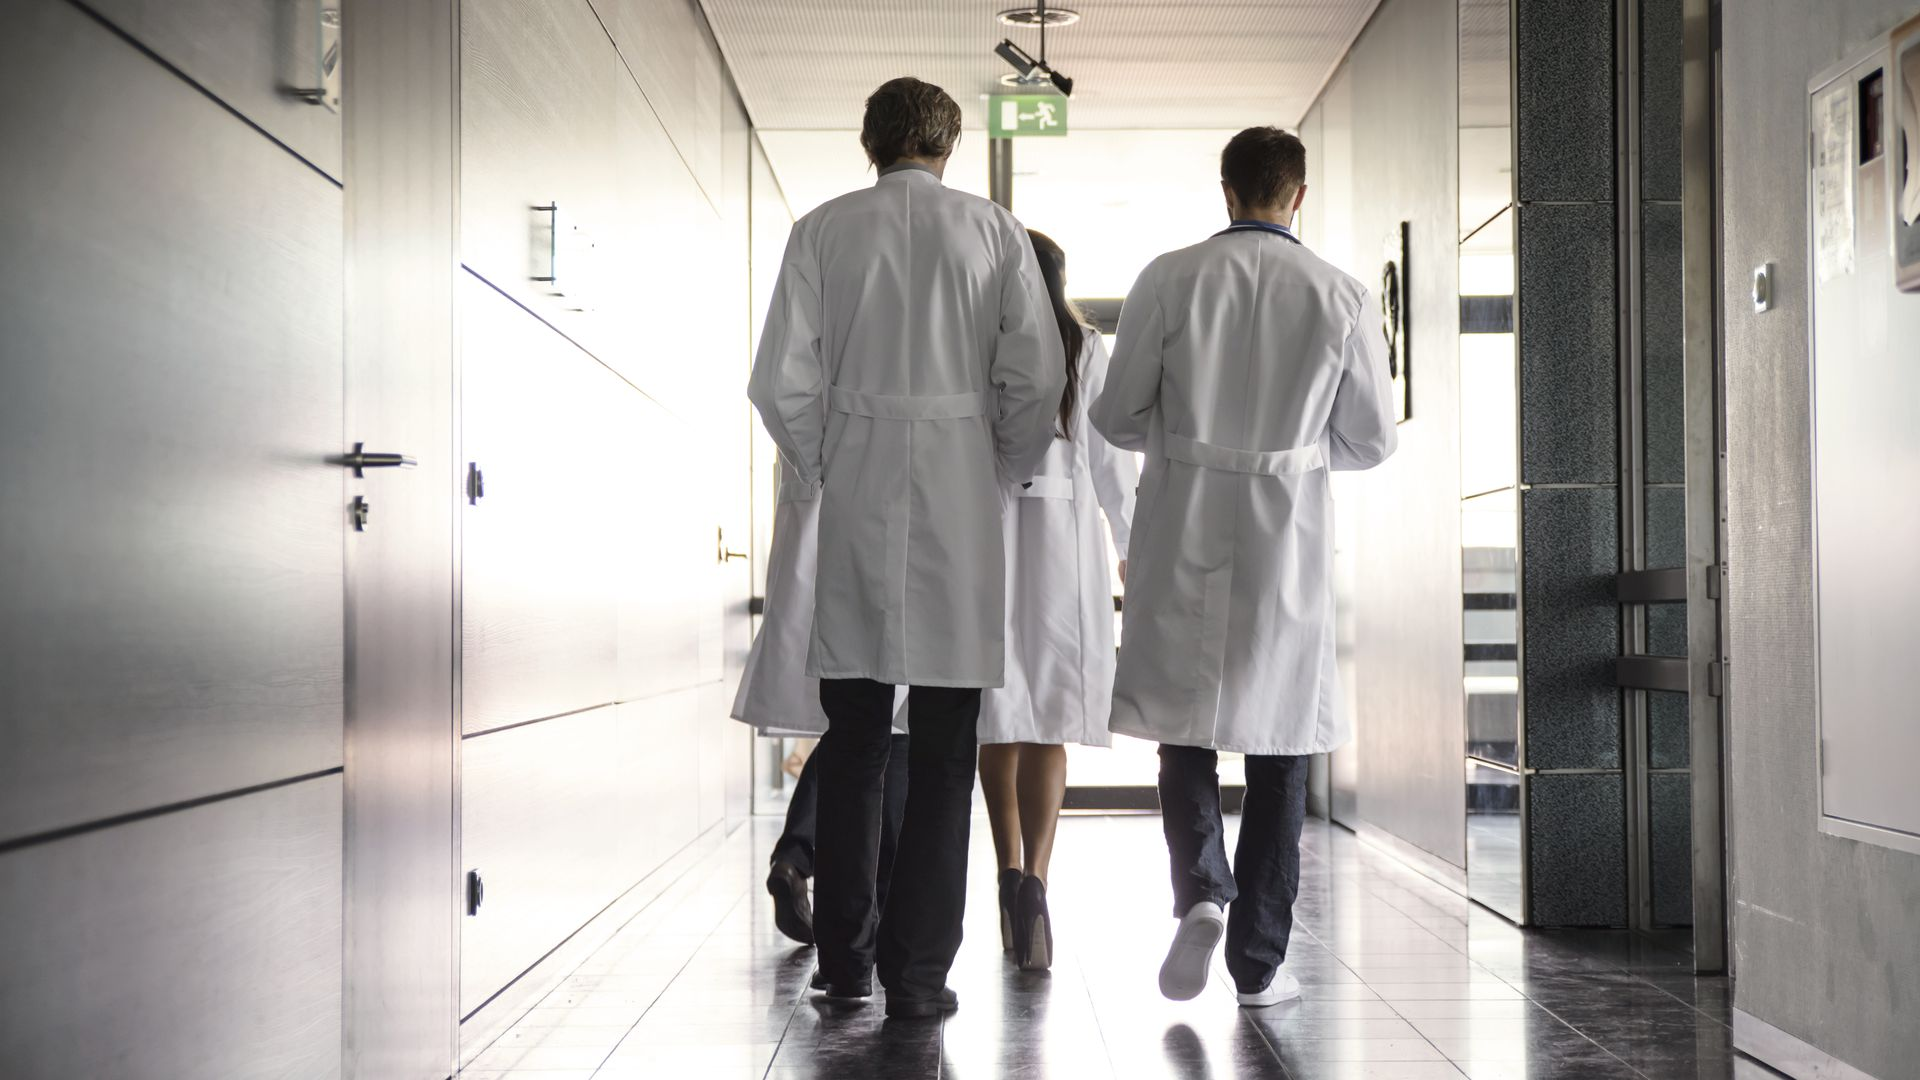 Team of doctors walking down a hall